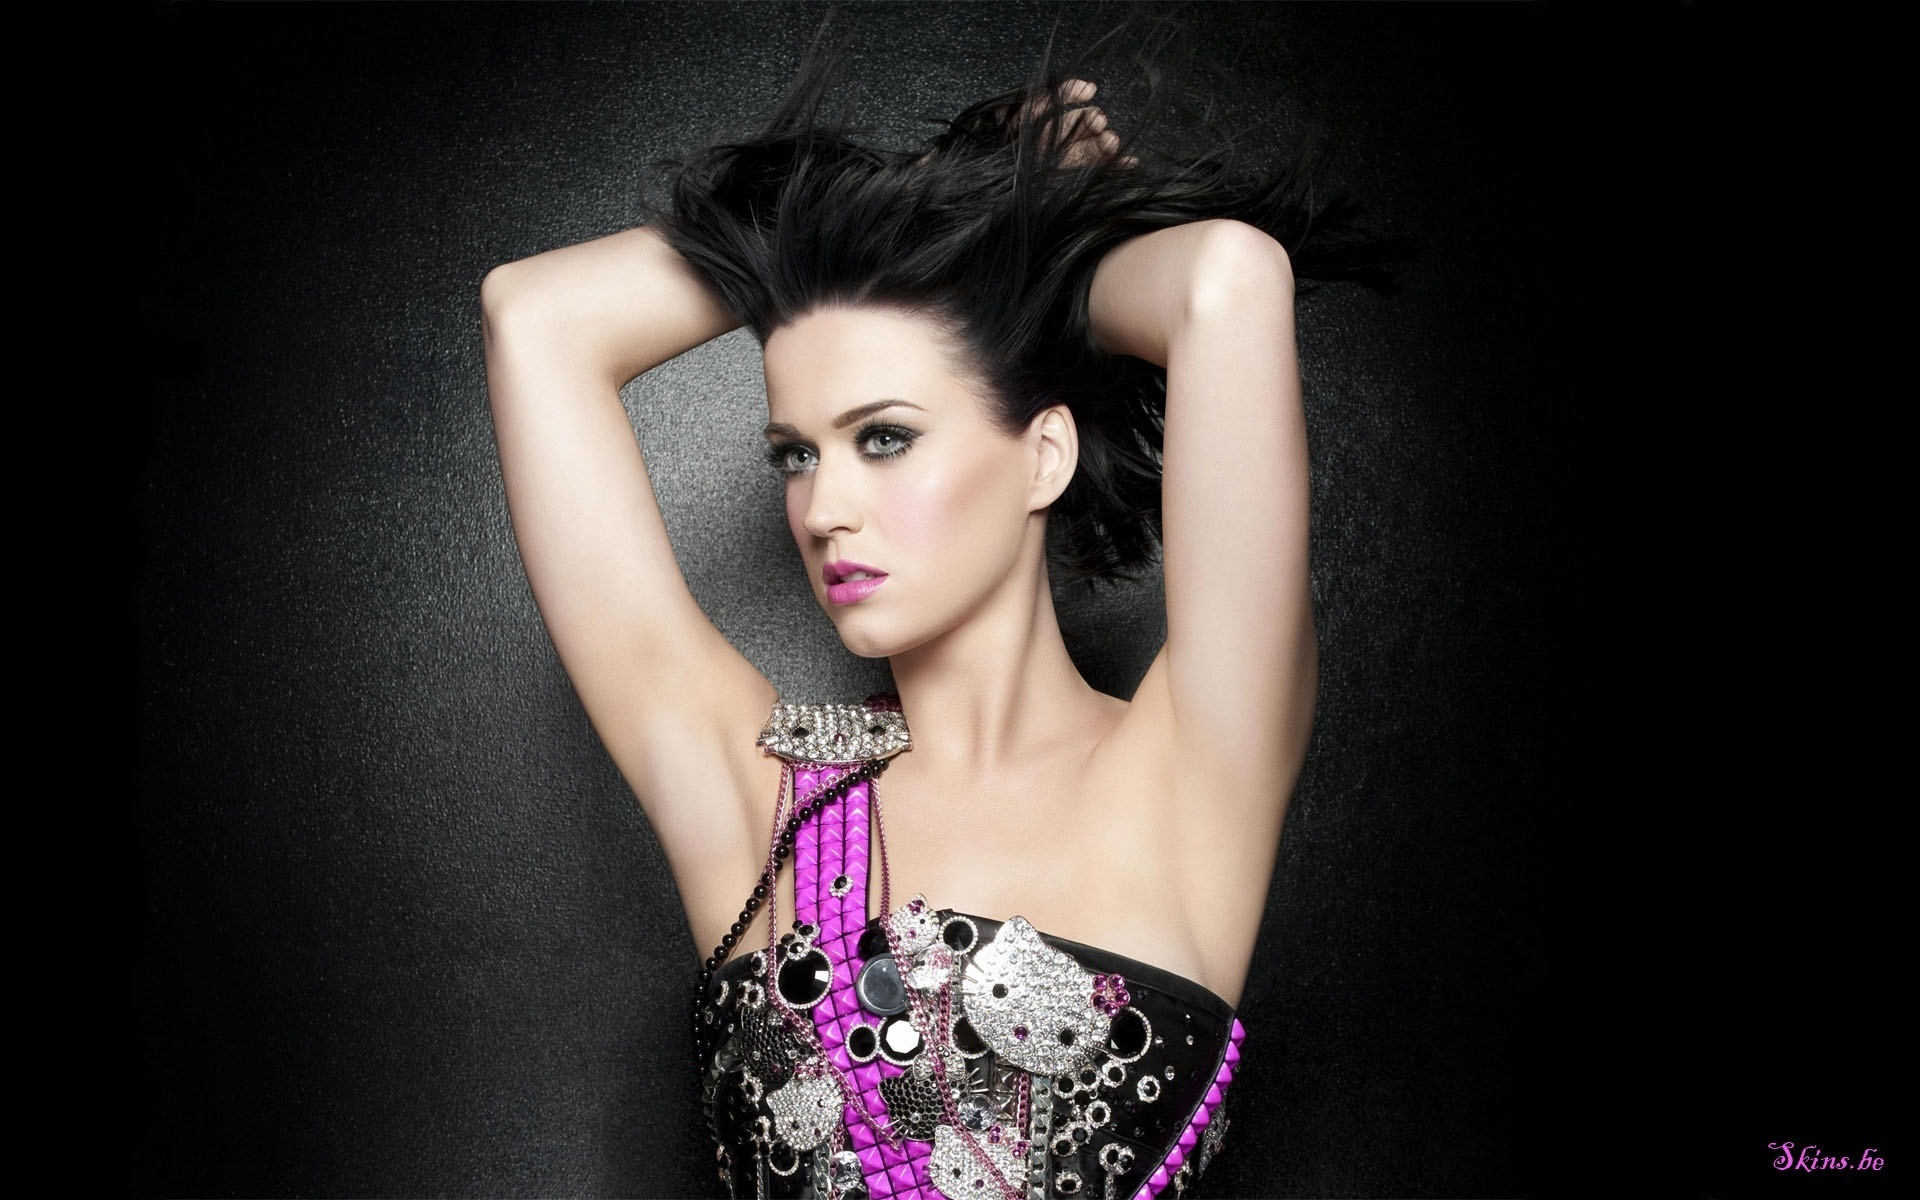 Katy Perry,Actress, Singer